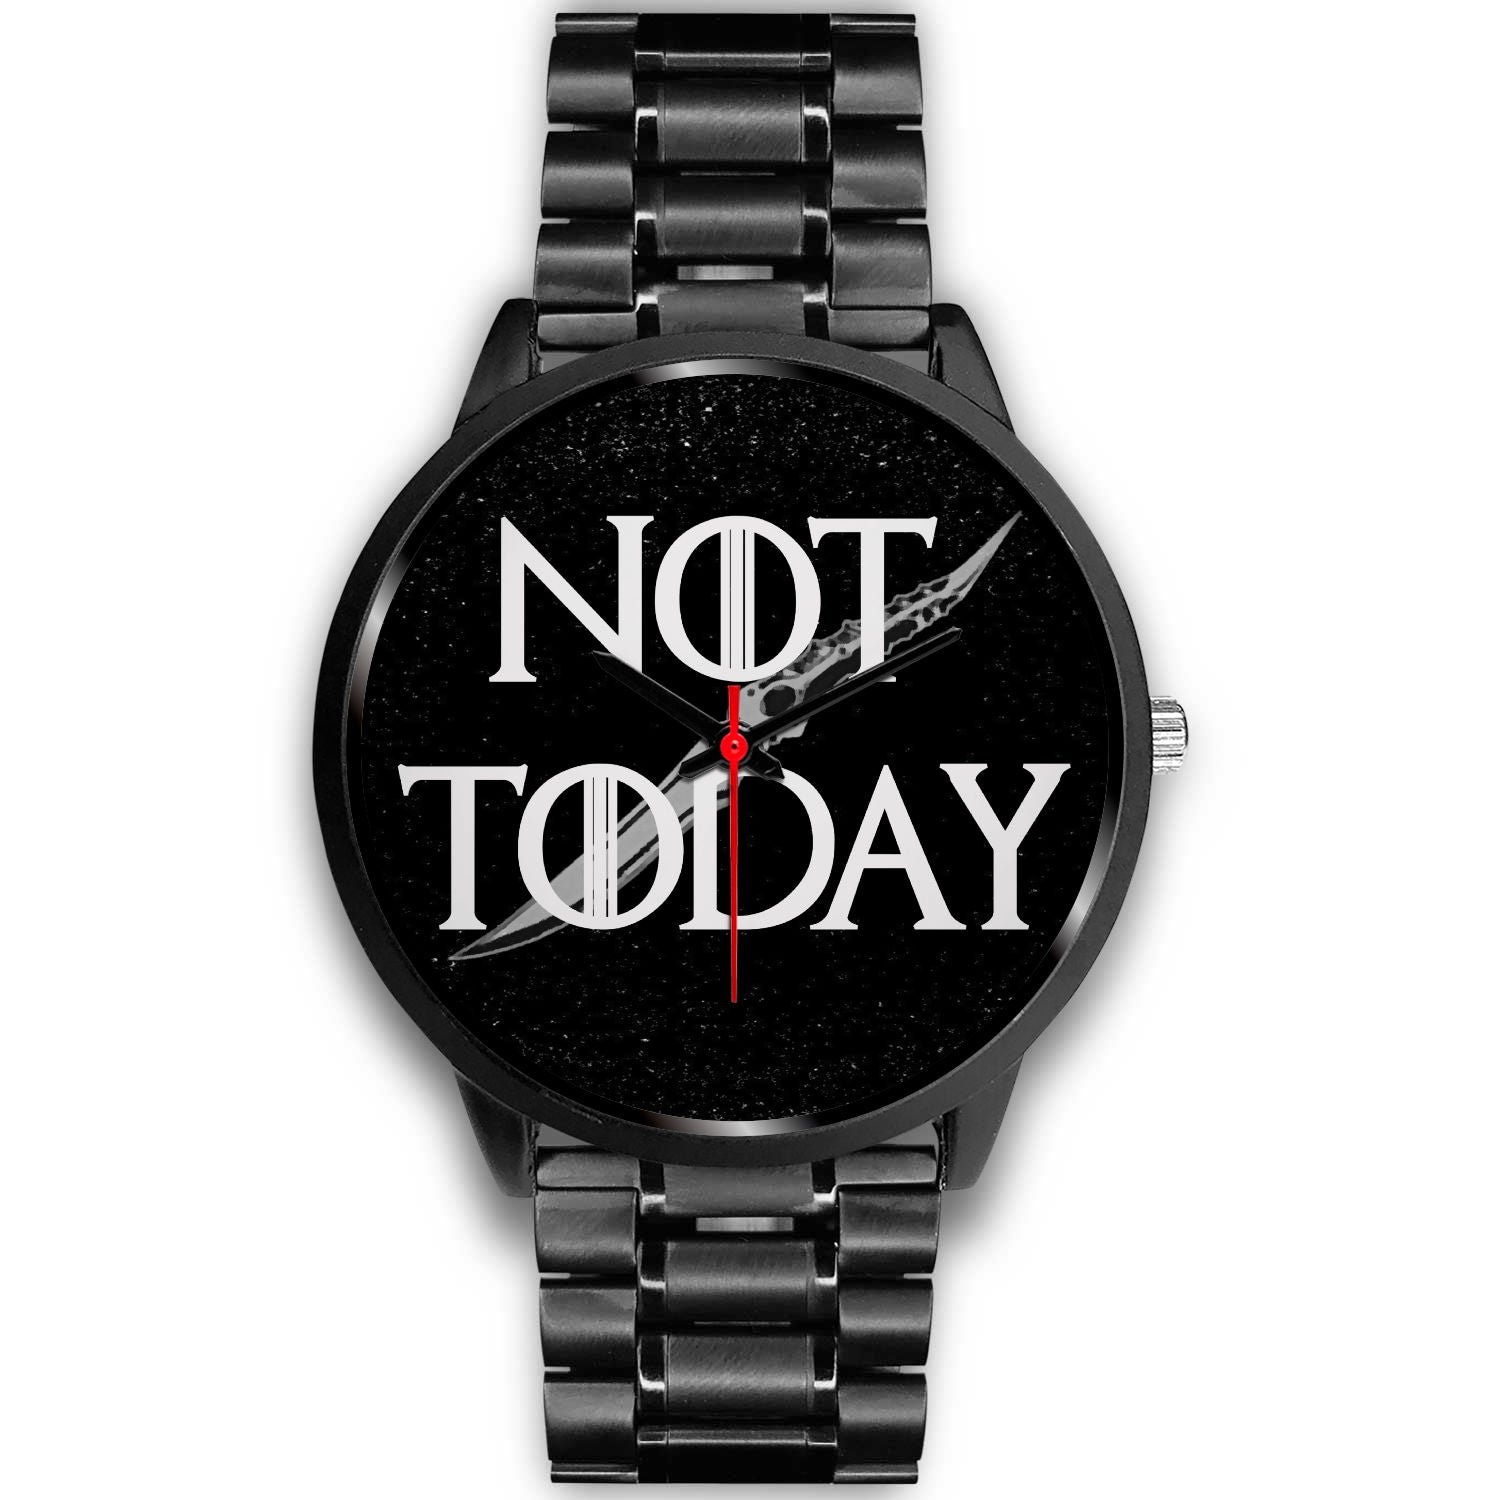 VIRA NOT TODAY BLACK STAINLESS STEEL WATCH